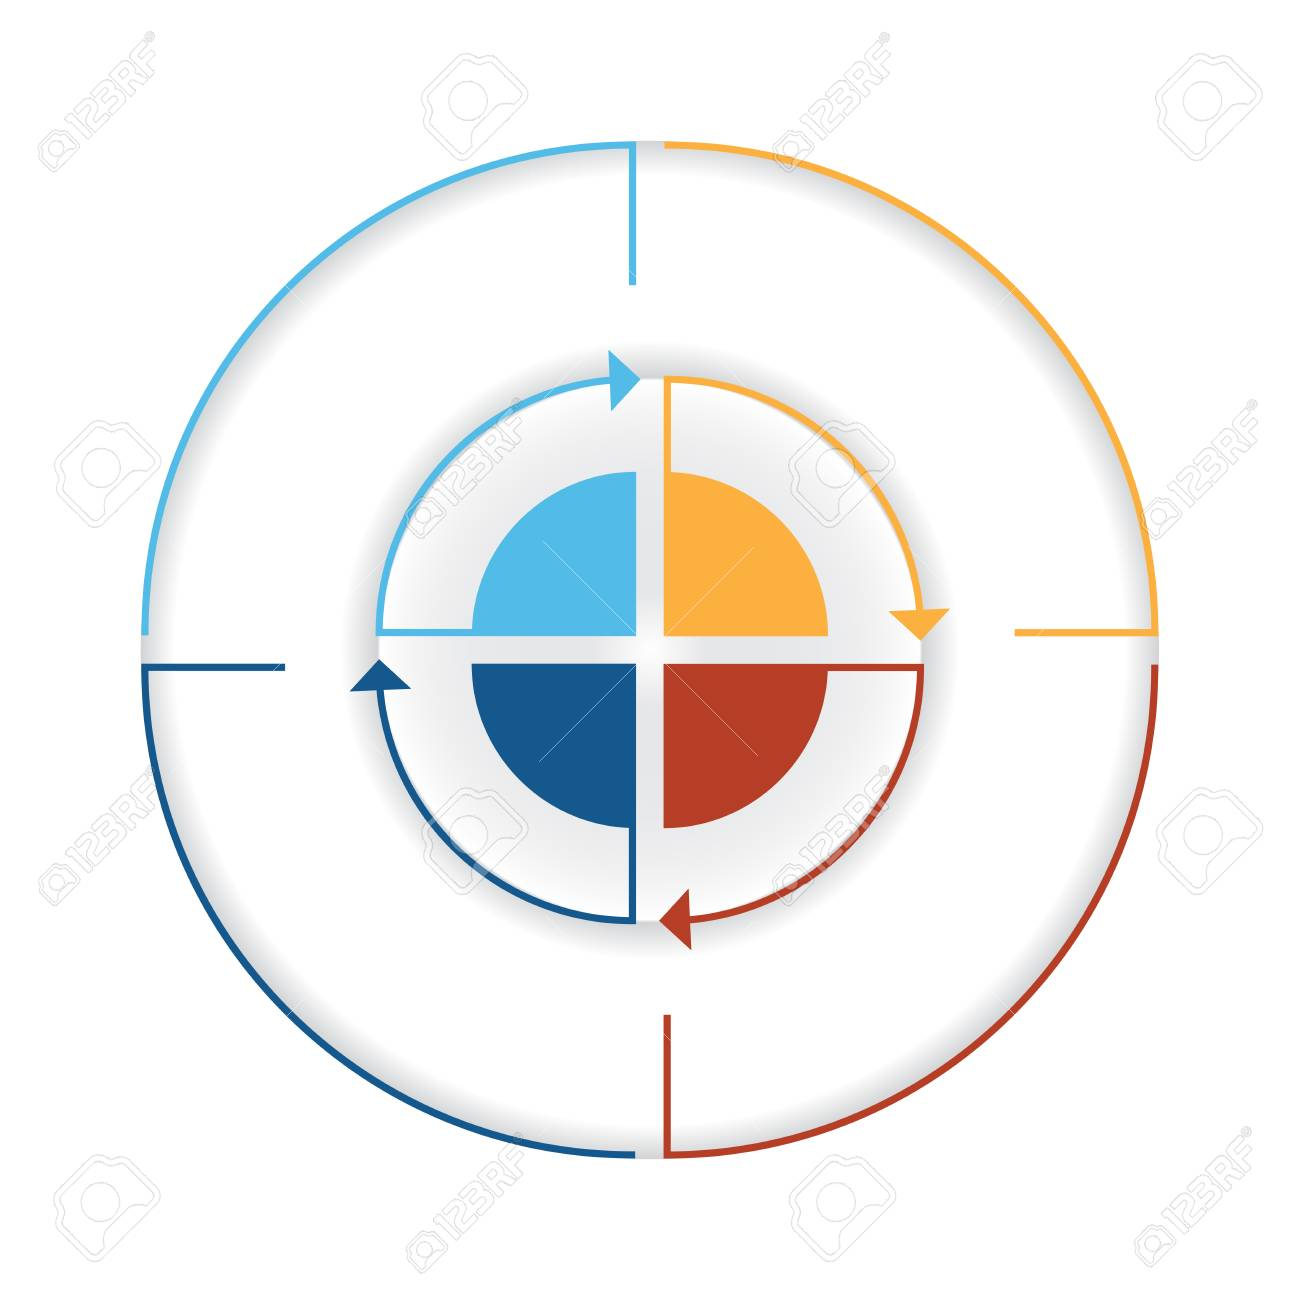 Arrows from colourful lines around circle template infographic arrows from colourful lines around circle template infographic four position pie chart stock photo nvjuhfo Choice Image